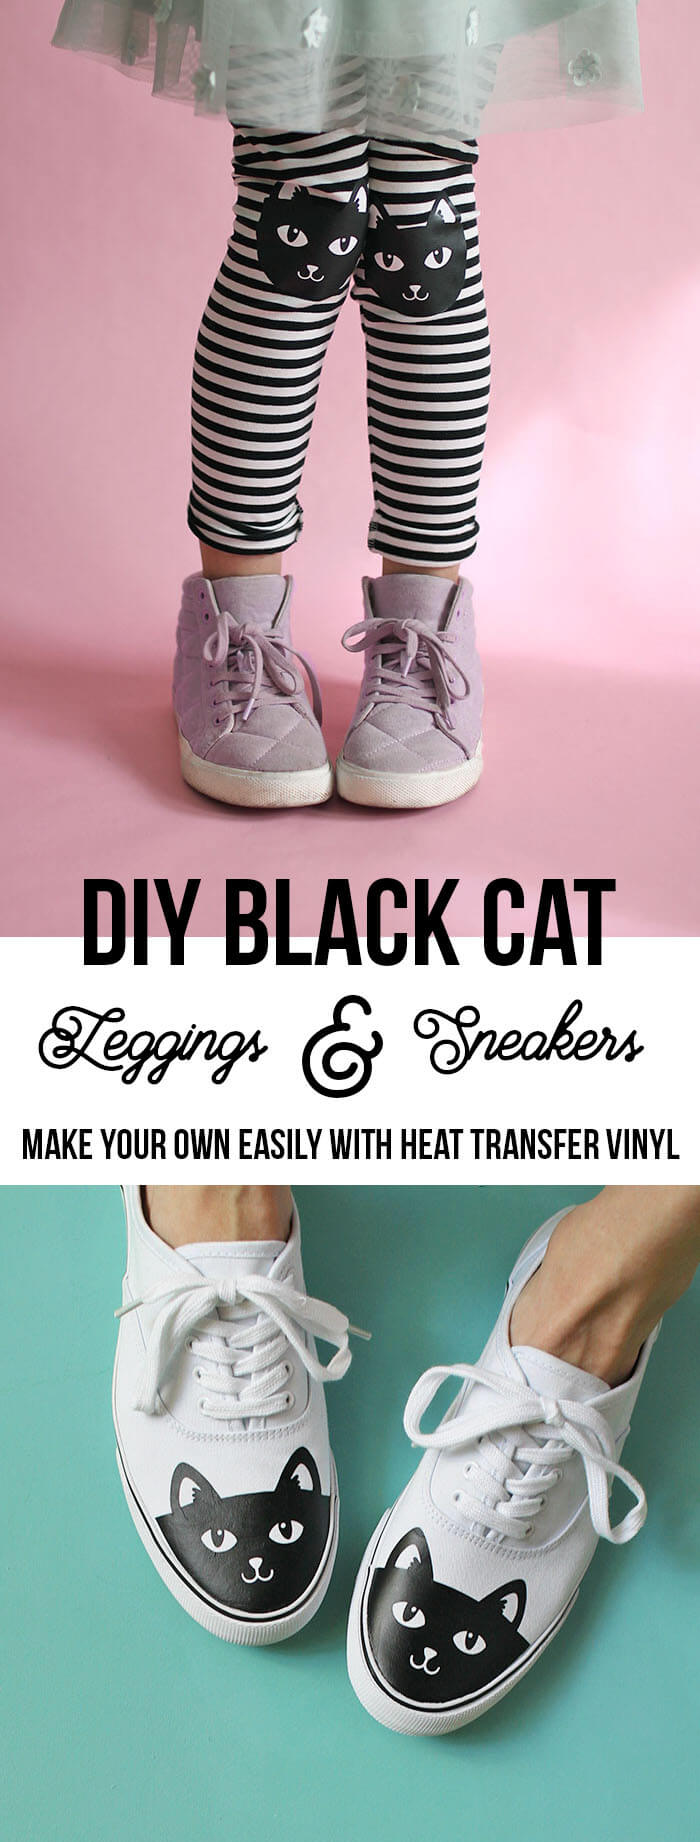 make your own black cat leggings and sneakers easily with heat transfer vinyl and your silhouette - free cut file and instructions on how to make your own - DIY cat shoes, DIY cat knee leggings